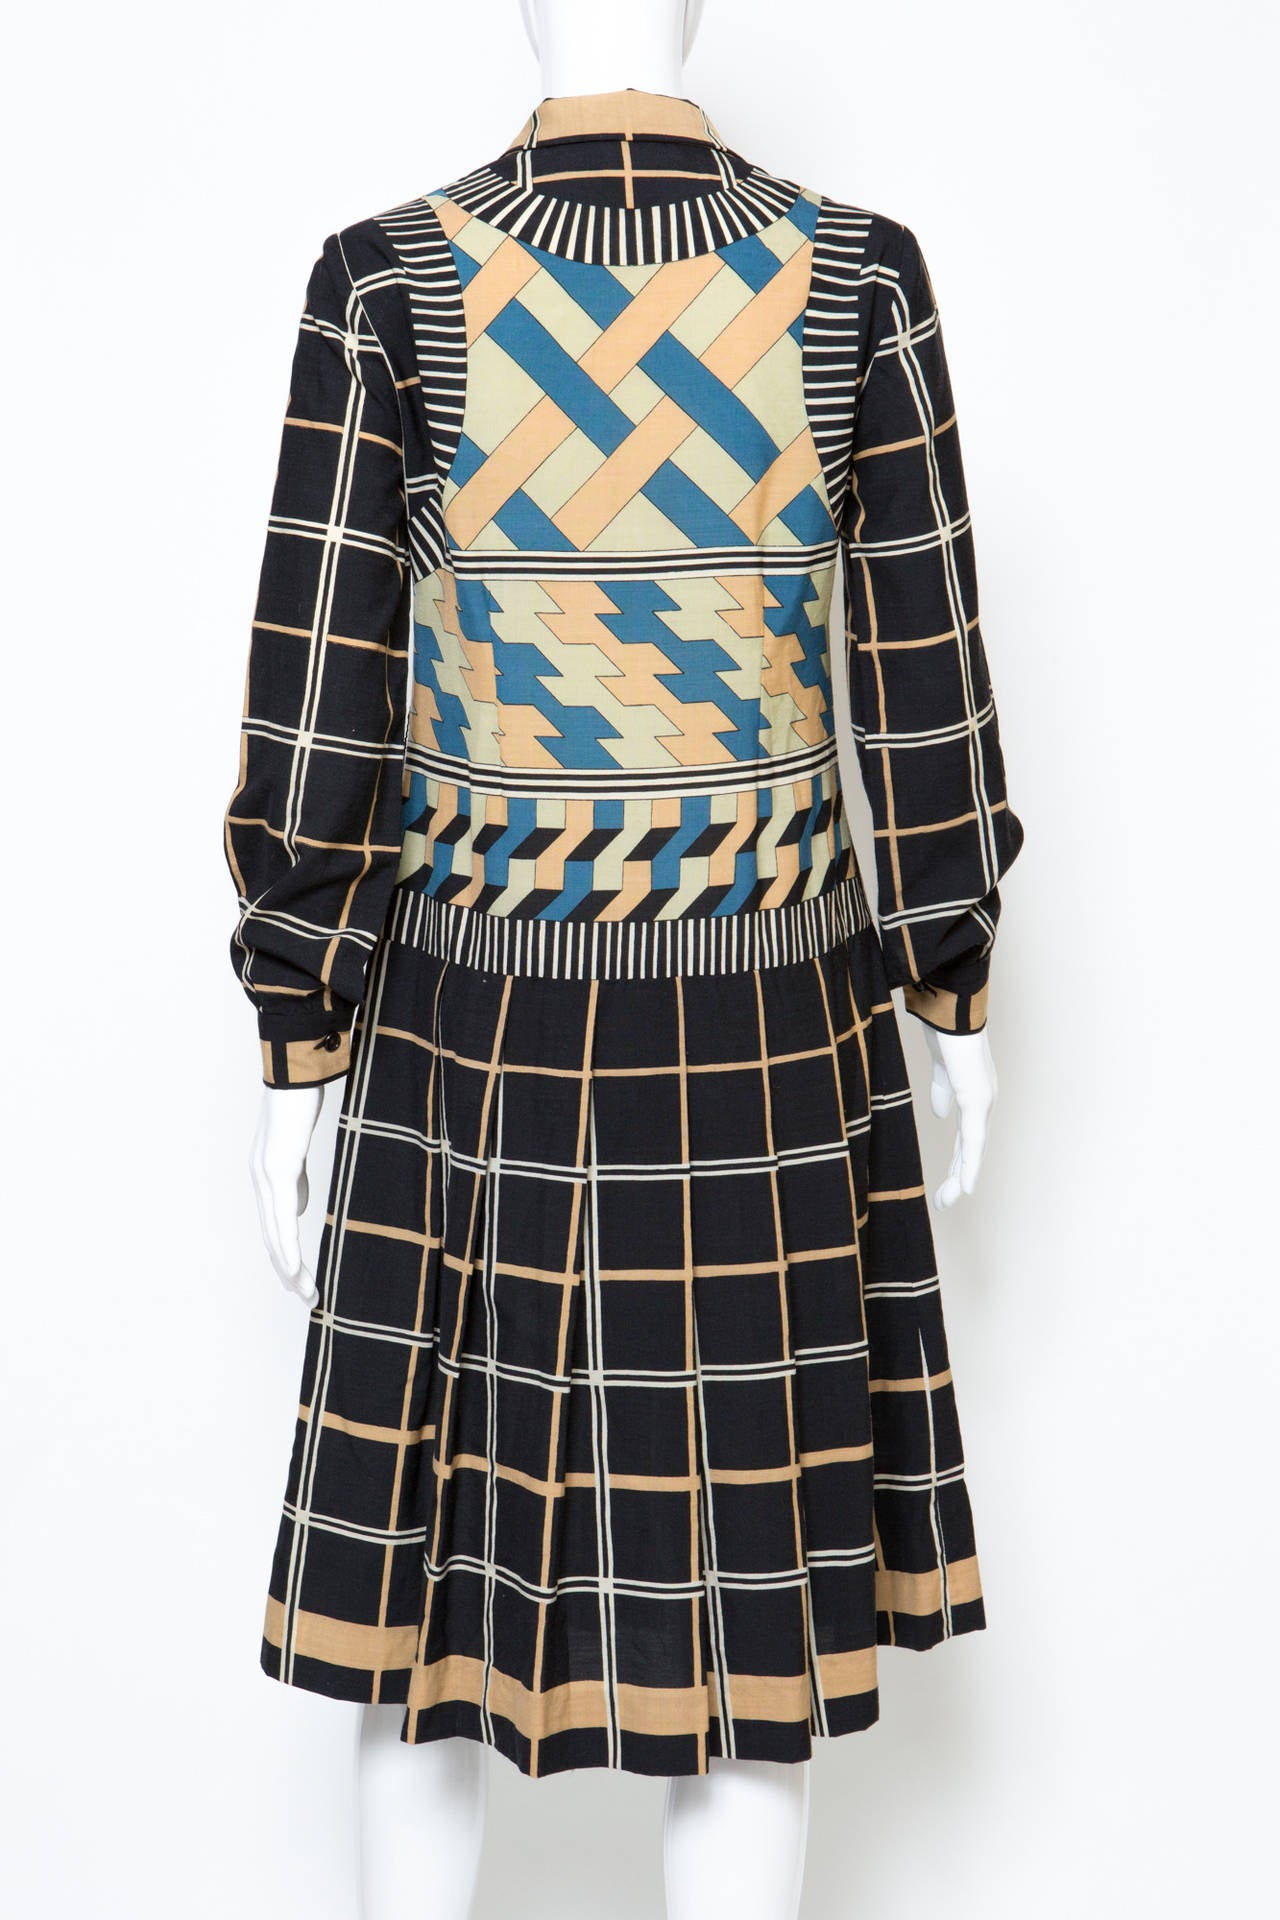 1970s Lanvin Printed Dress 5